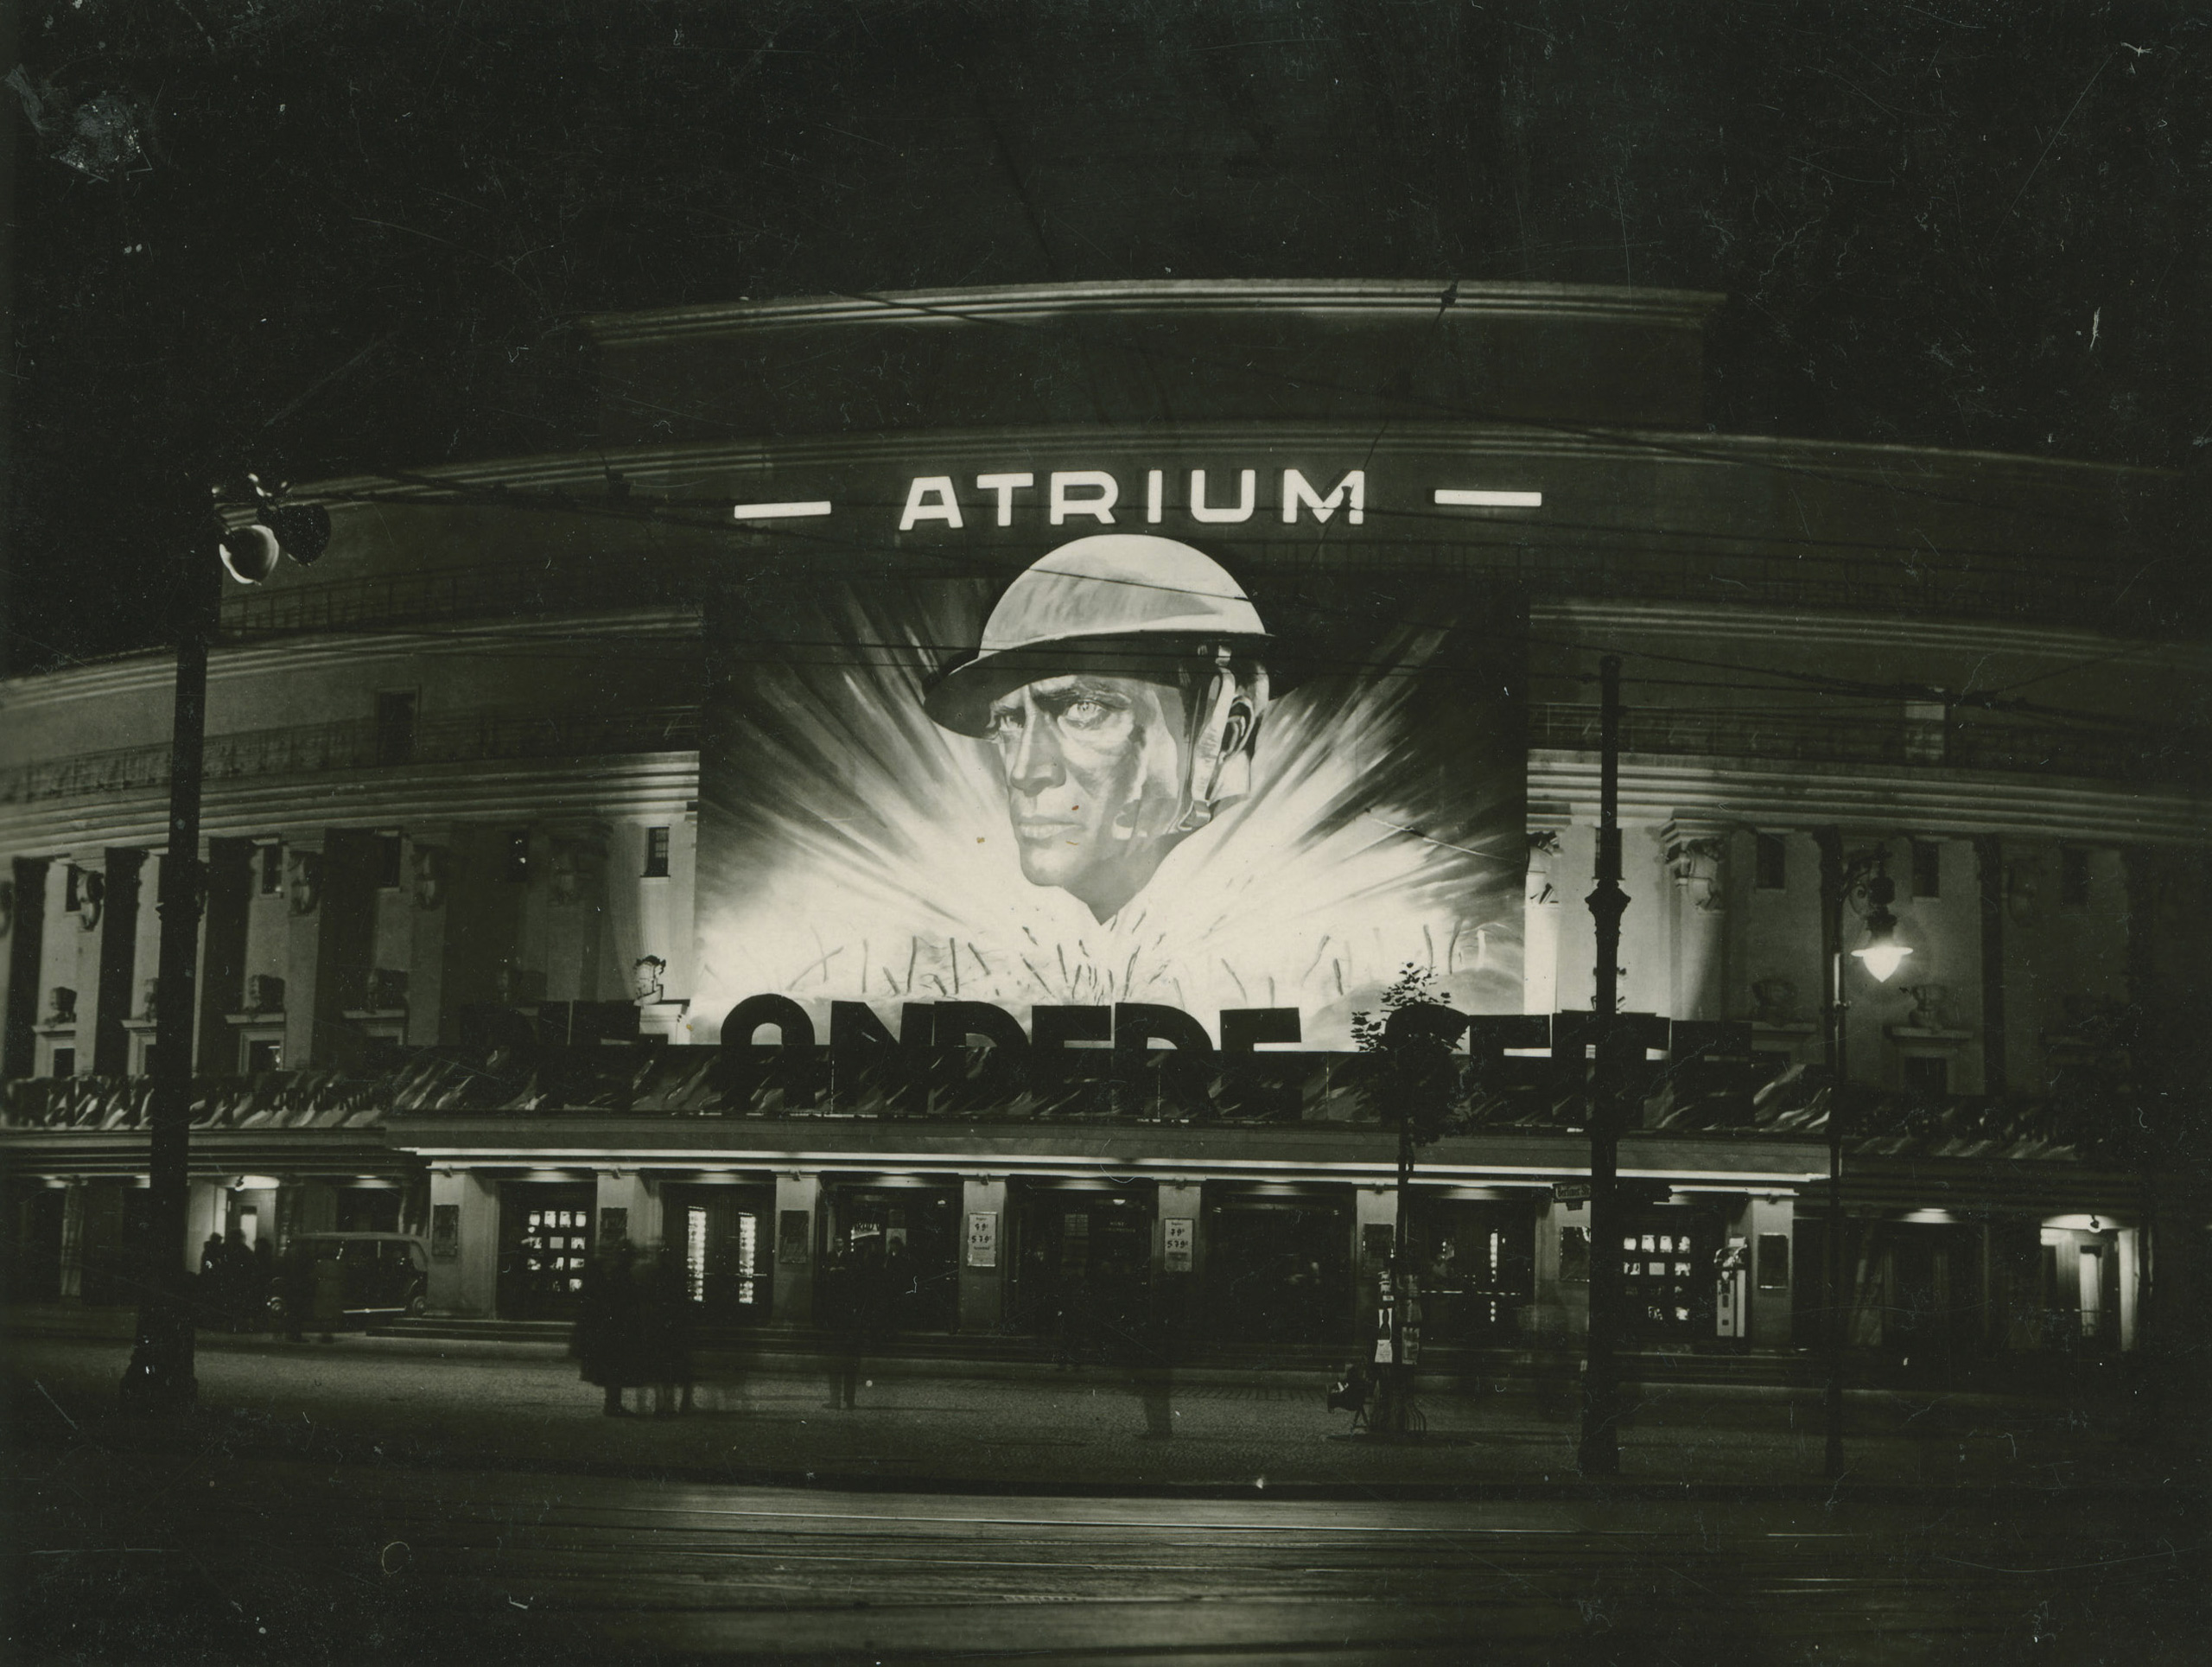 Black and white photo of the cinema façade at night with advertisements for a movie about soldiers